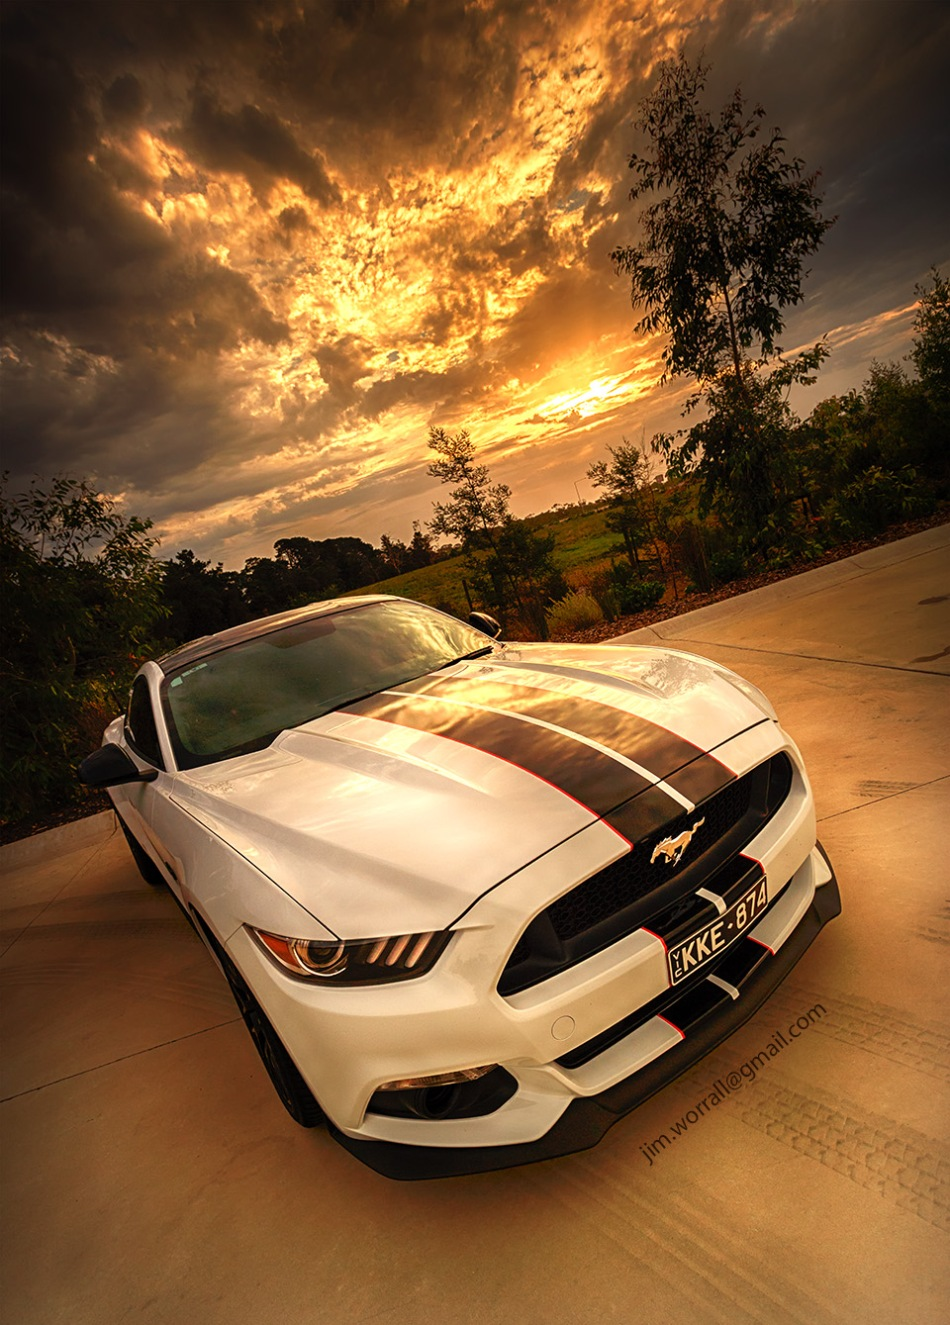 jim worrall, ford mustang, stang, car, sunset